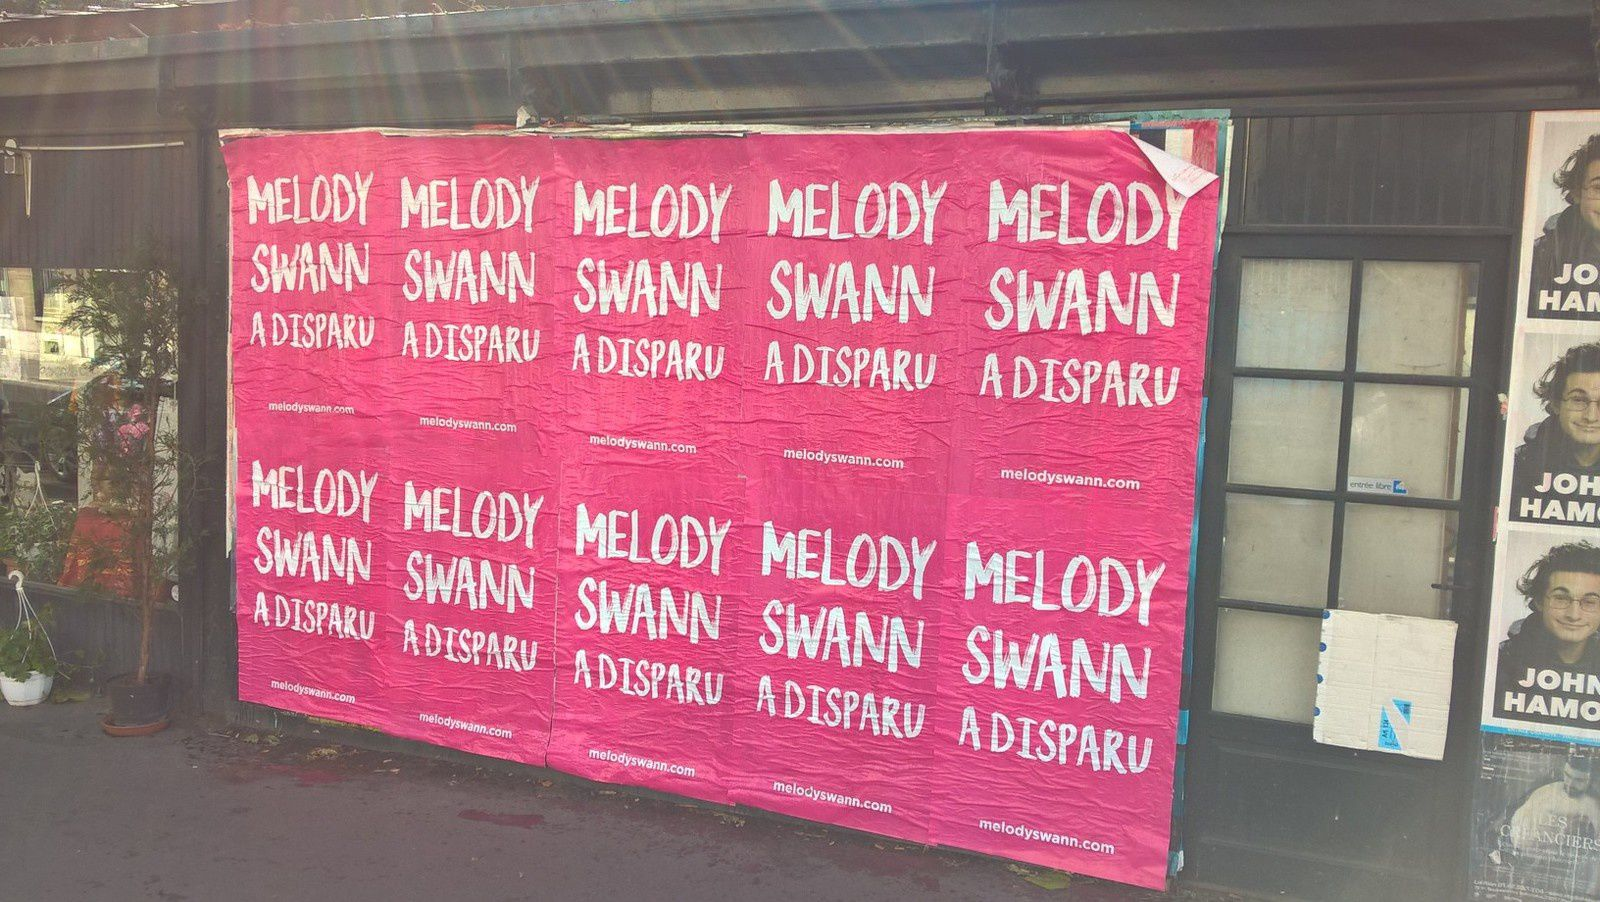 melody swann, buzz, timéo, comedie musicale